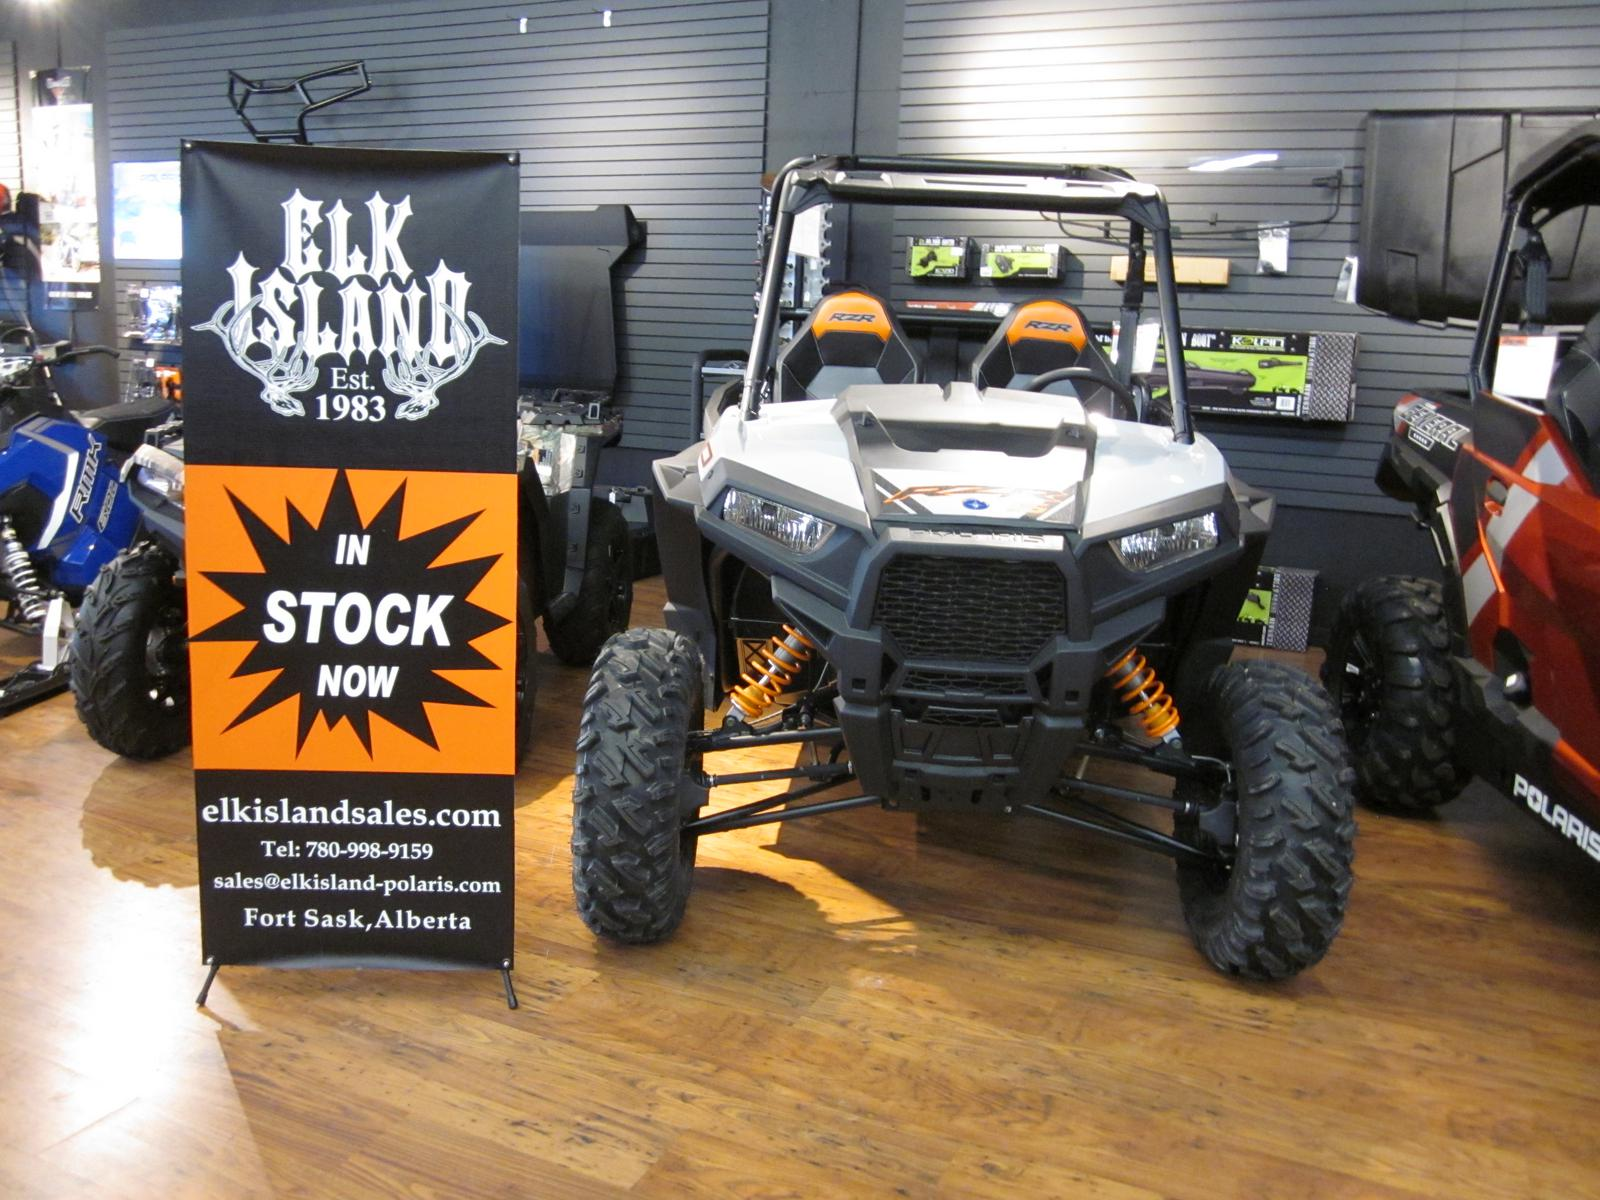 Polaris Dealers Alberta >> Inventory Elk Island Polaris Fort Saskatchewan Ab 780 998 9159